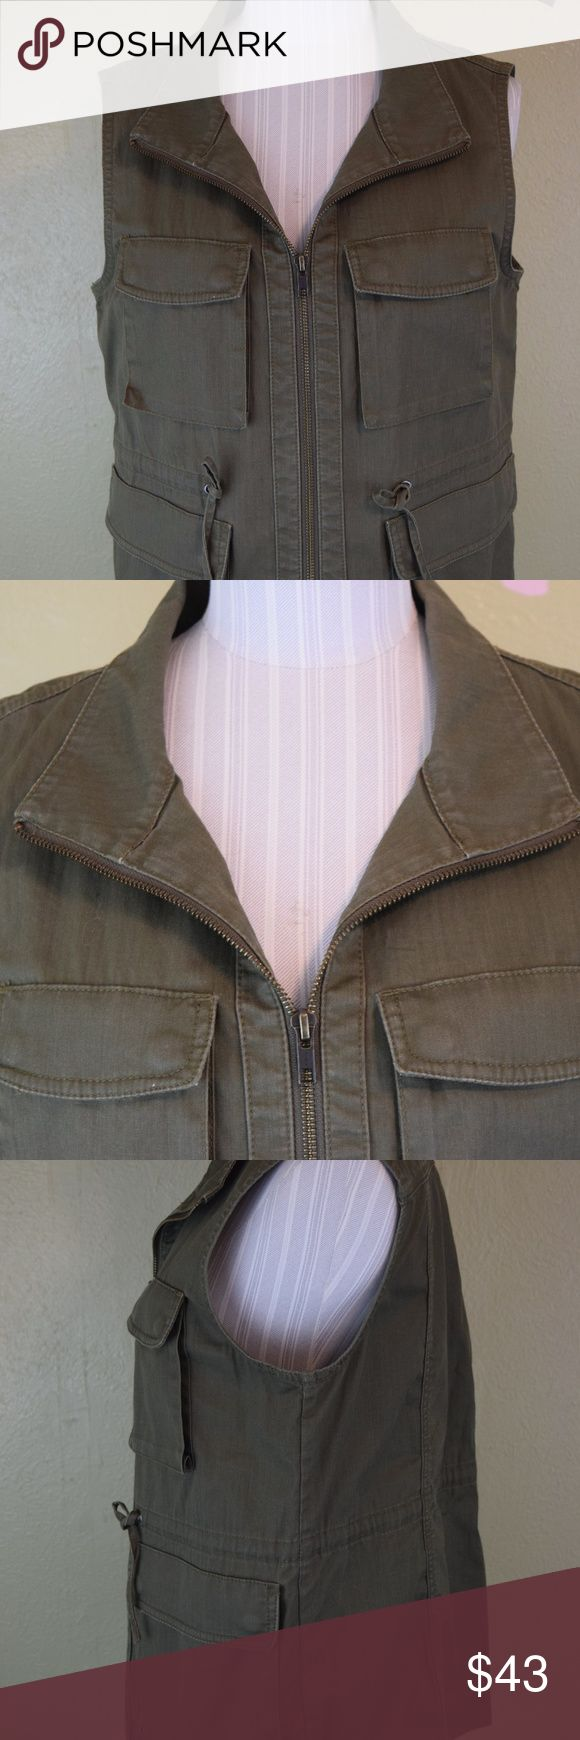 J Crew Utility Vest Small Green Army Pockets Great J Crew Utility Vest, great military feel.  Tons of pockets, green color. J. Crew Jackets & Coats Vests